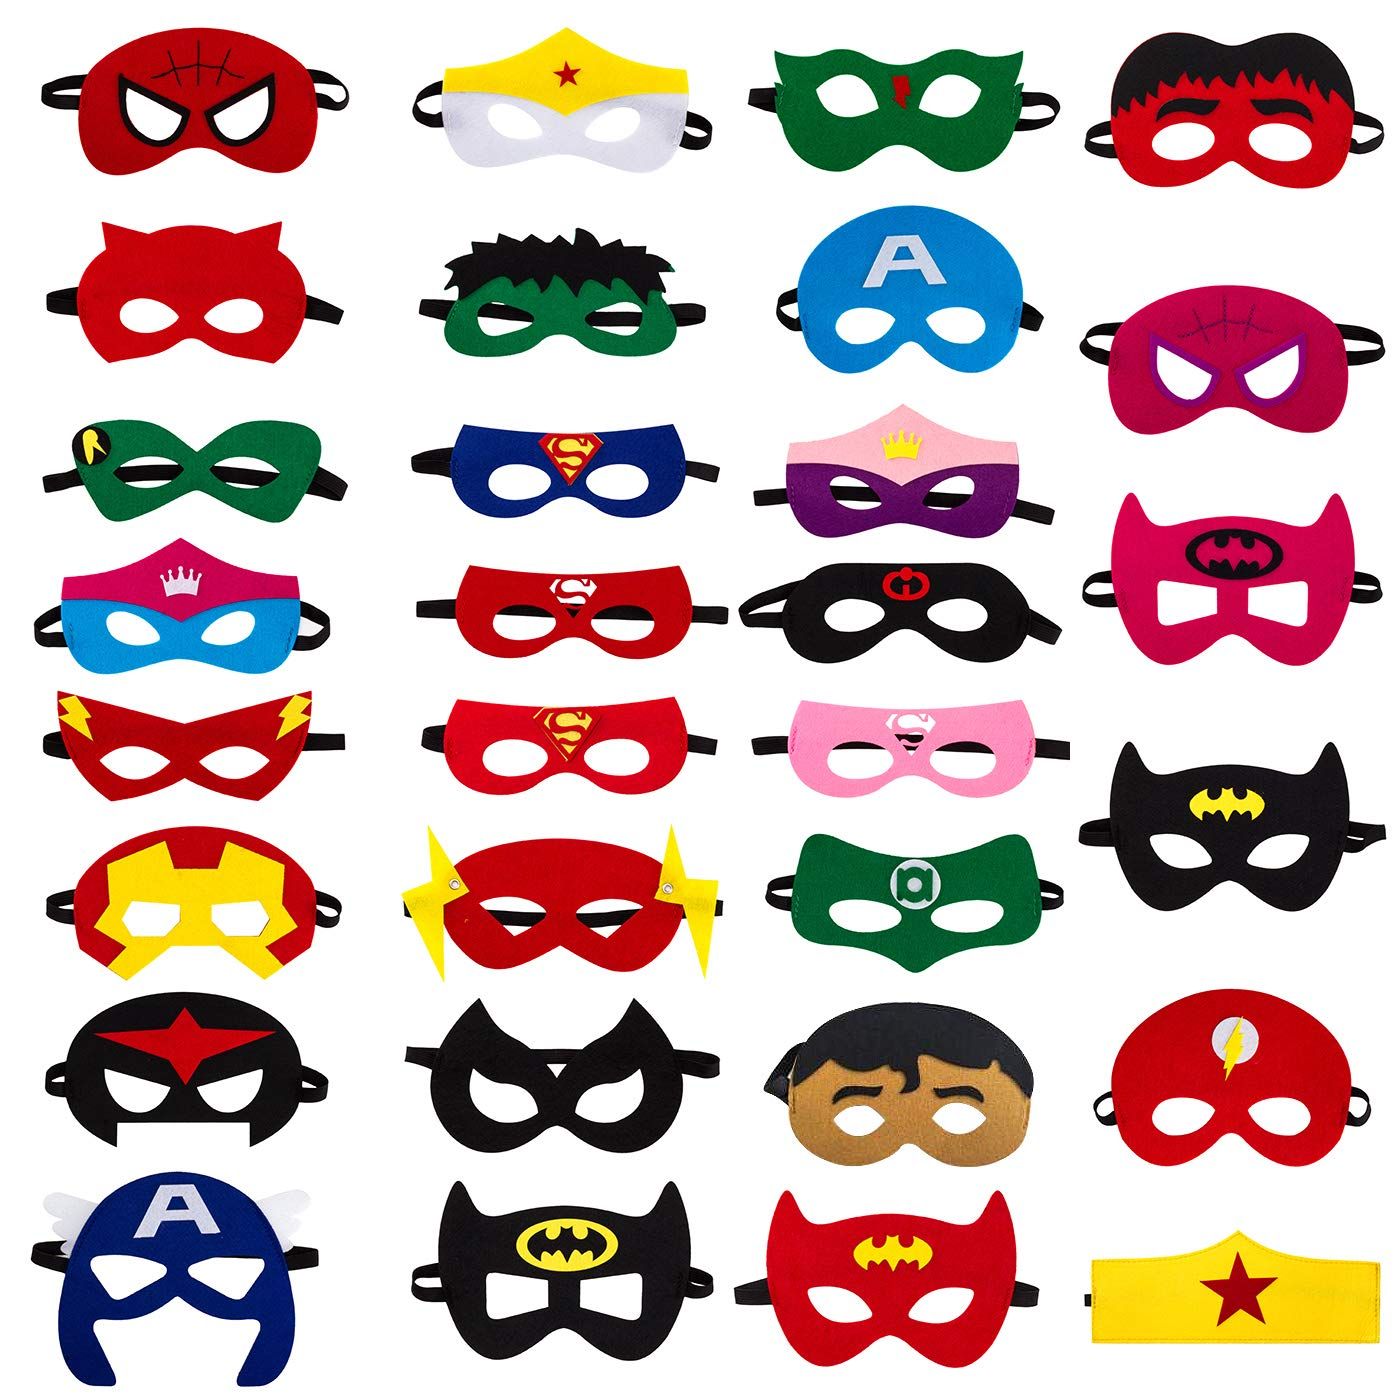 30pcs Superhero Felt Masks for Kids Party Cosplay Superhero Masks with Elastic Rope Party Favors Mask for Birthday Gifts (Multicolor) by Solovey